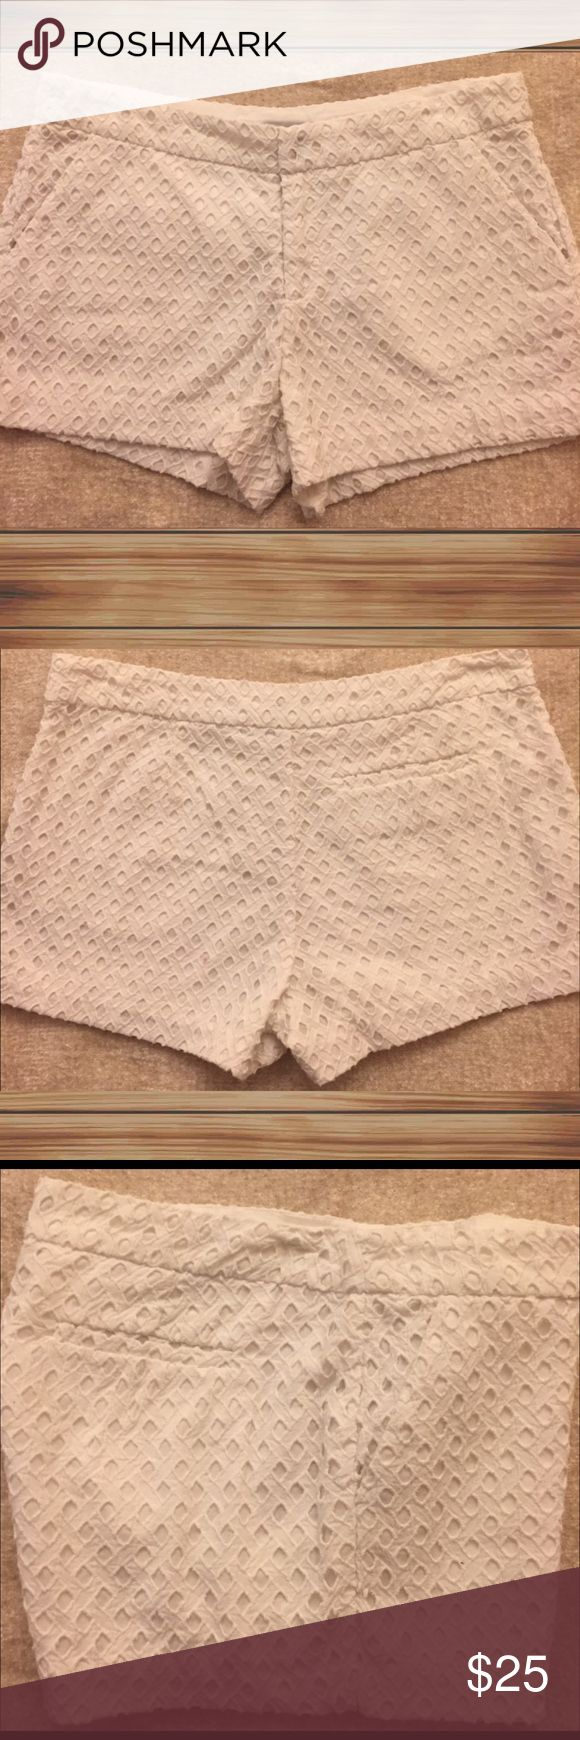 Joie Eyelet Shorts Size 6, white eyelet shorts for n excellent condition. Joie Shorts